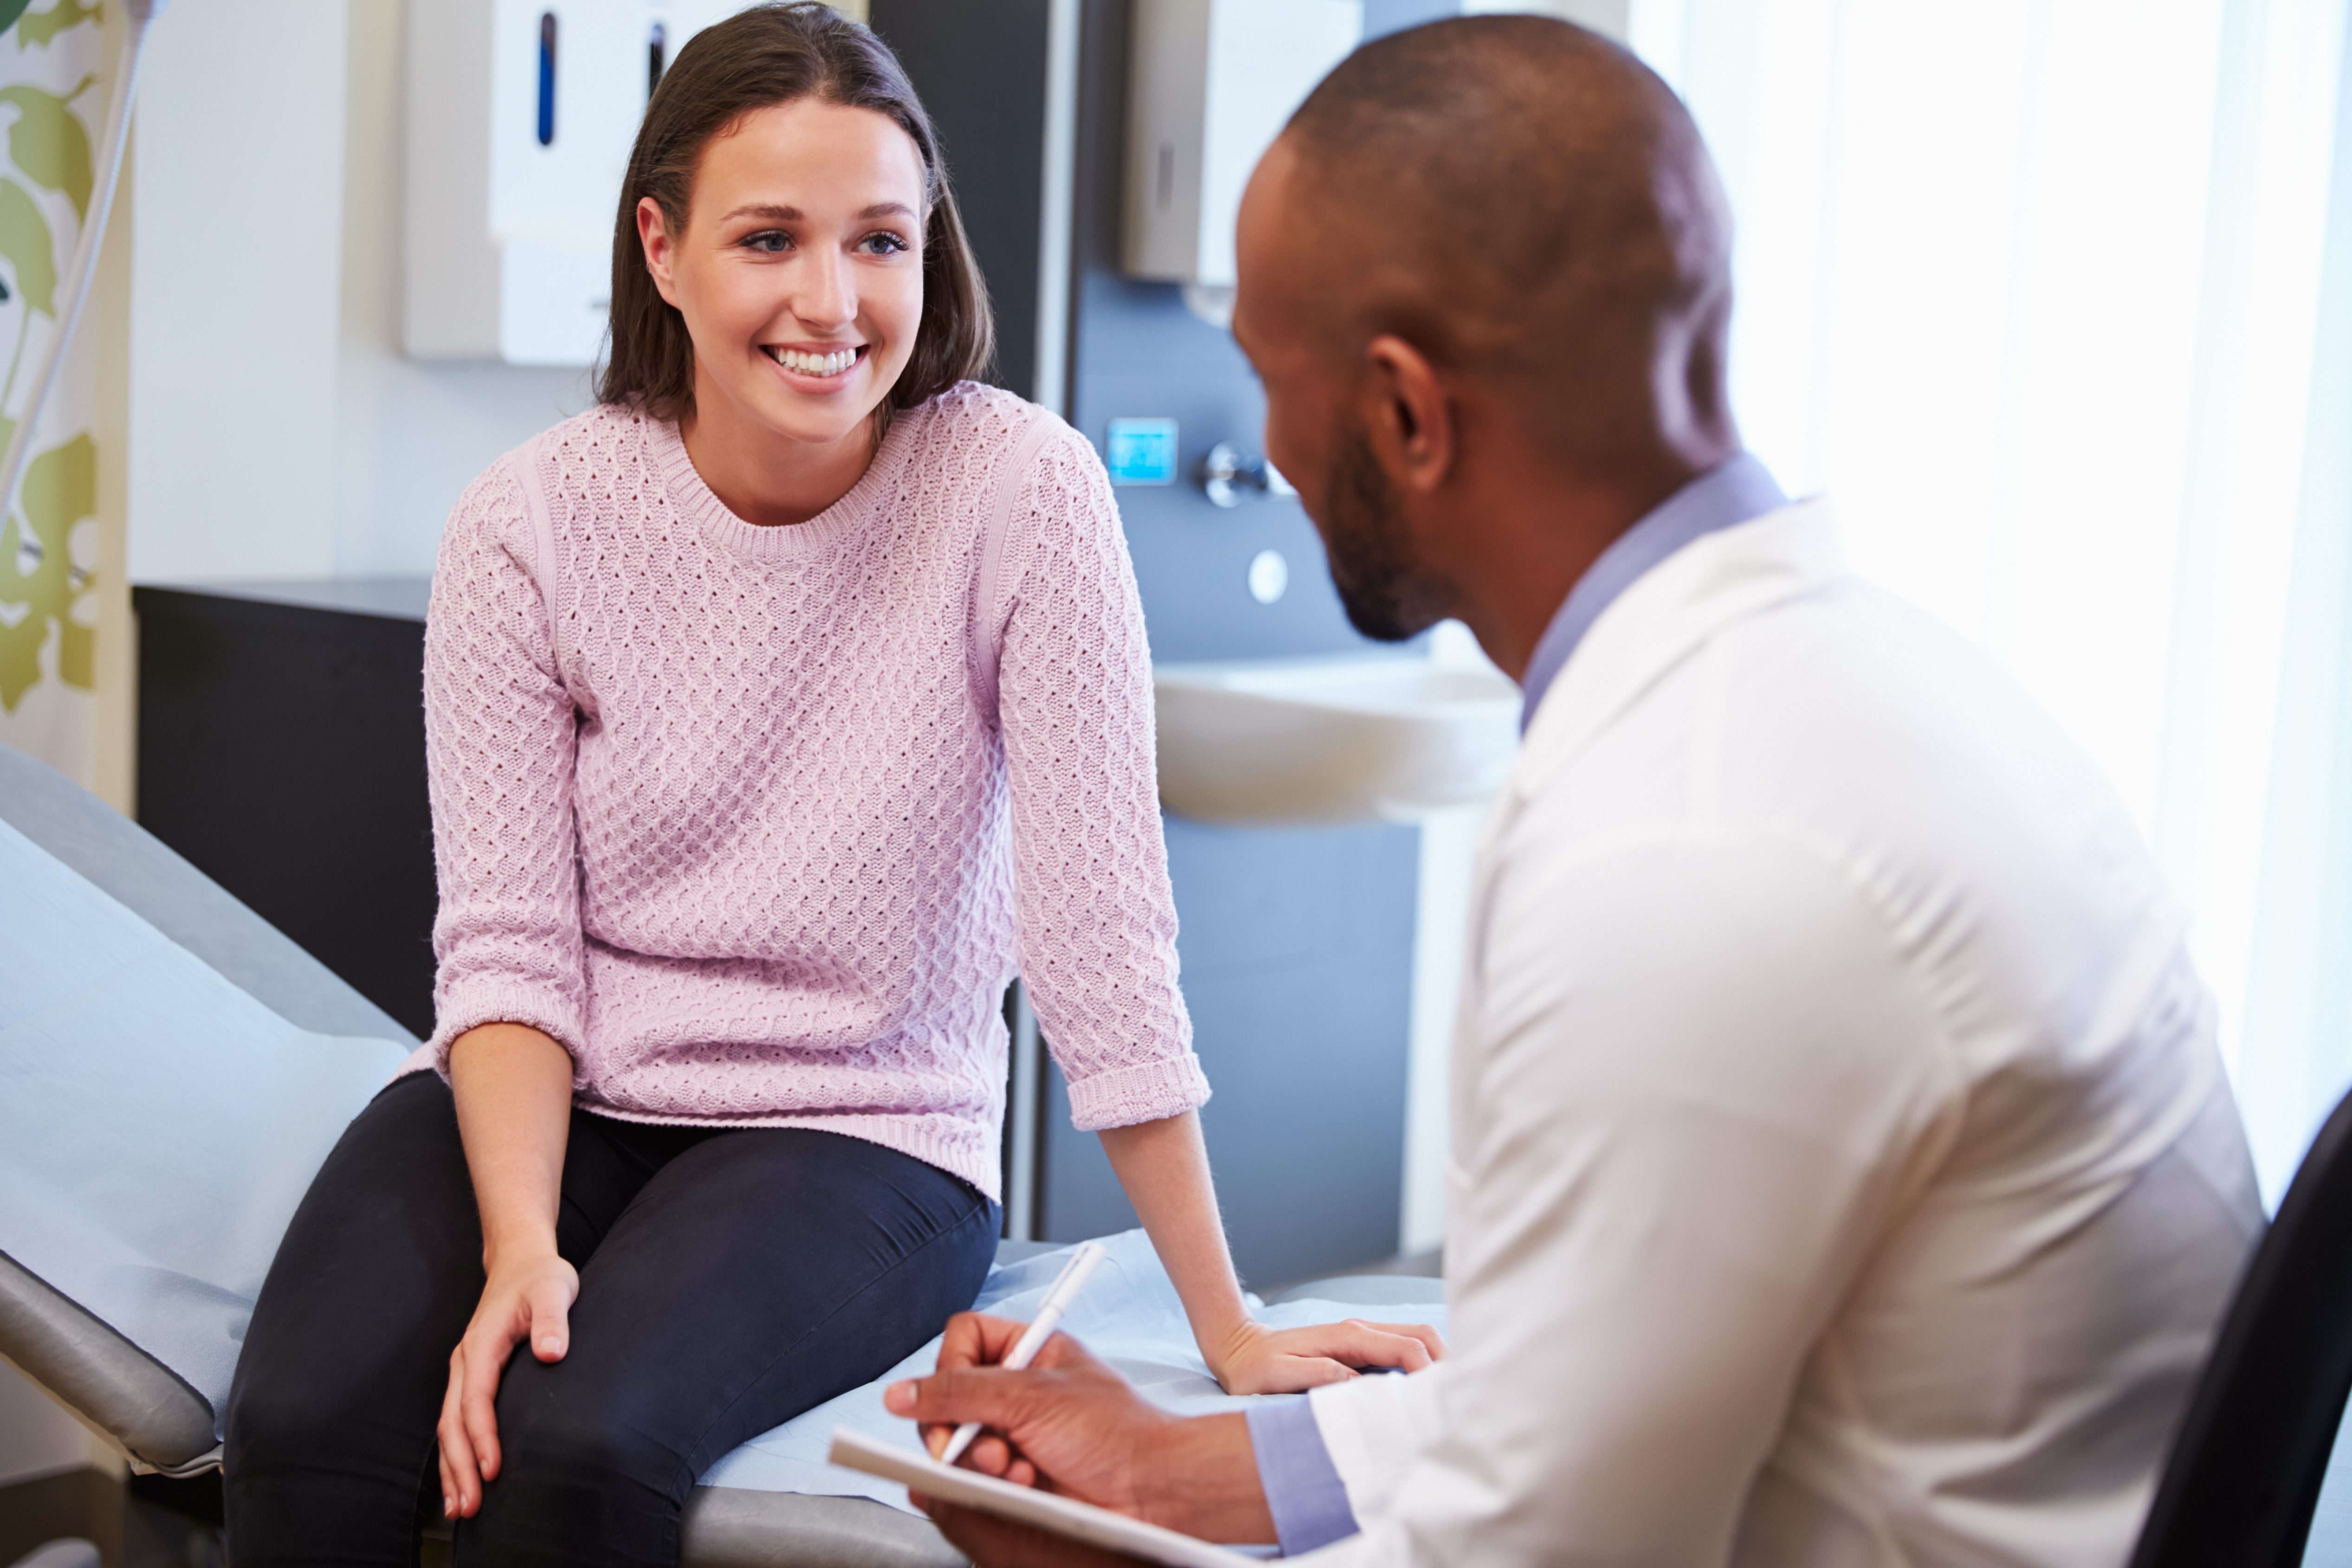 Colorectal Cancer Symptoms When To Talk To Your Doctor Md Anderson Cancer Center